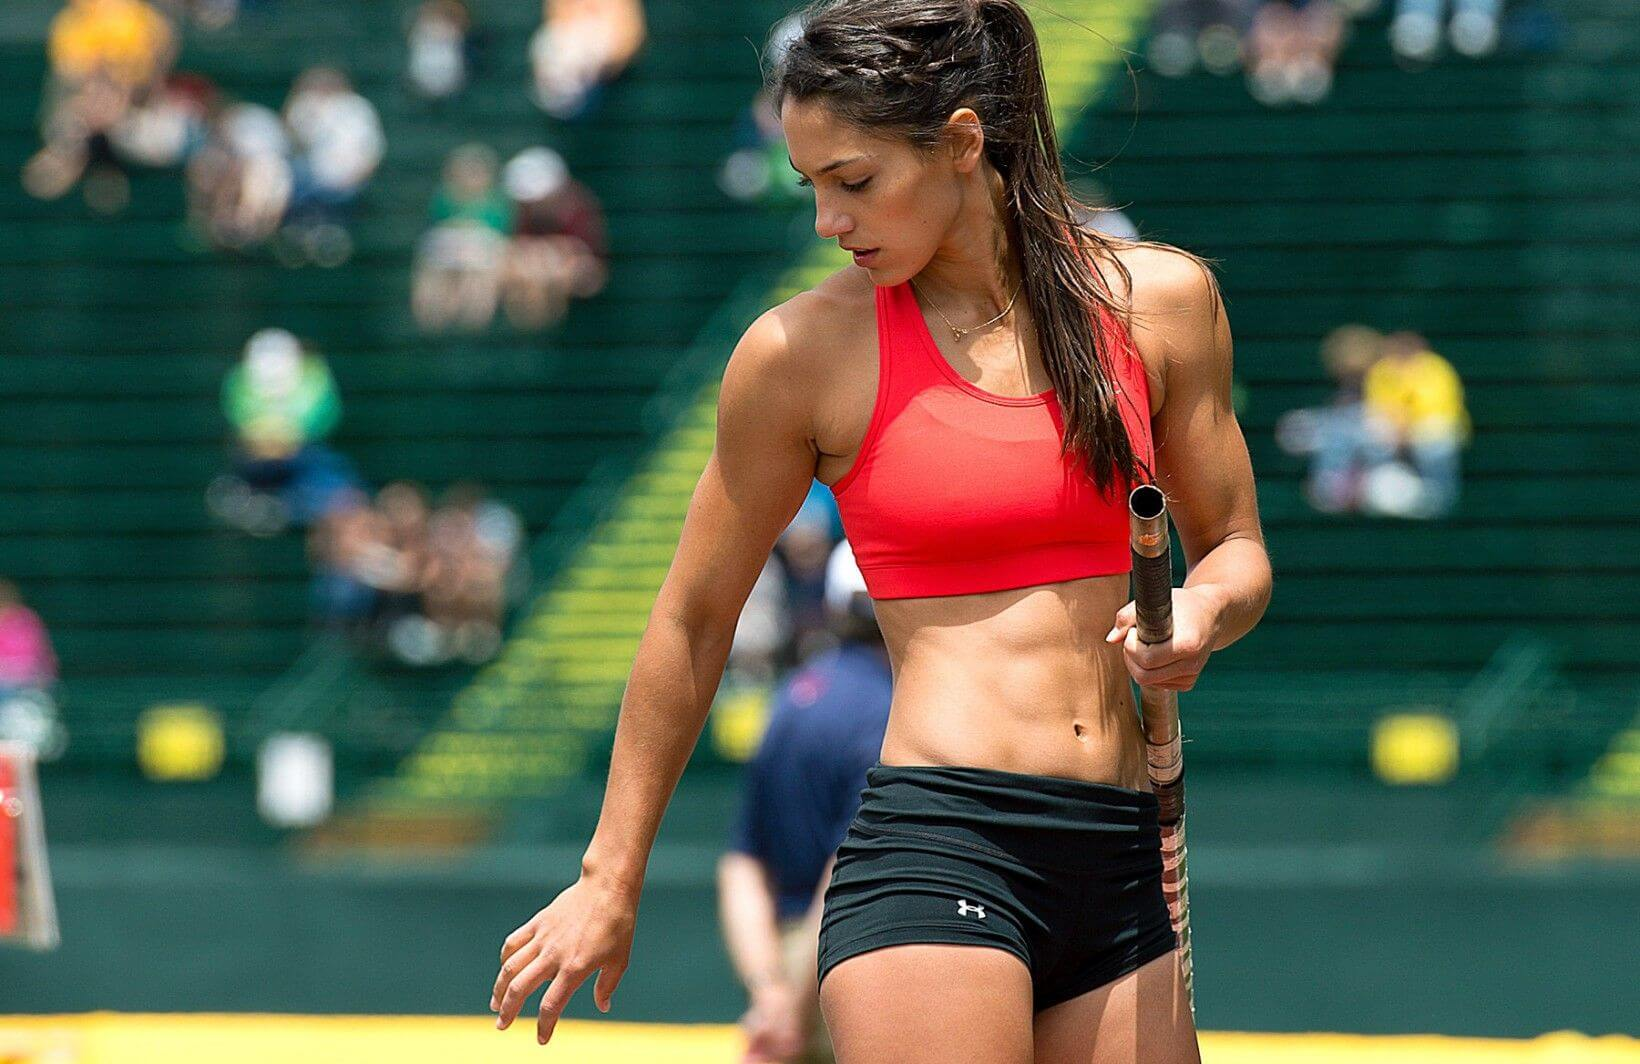 Allison Stokke Hot Pics